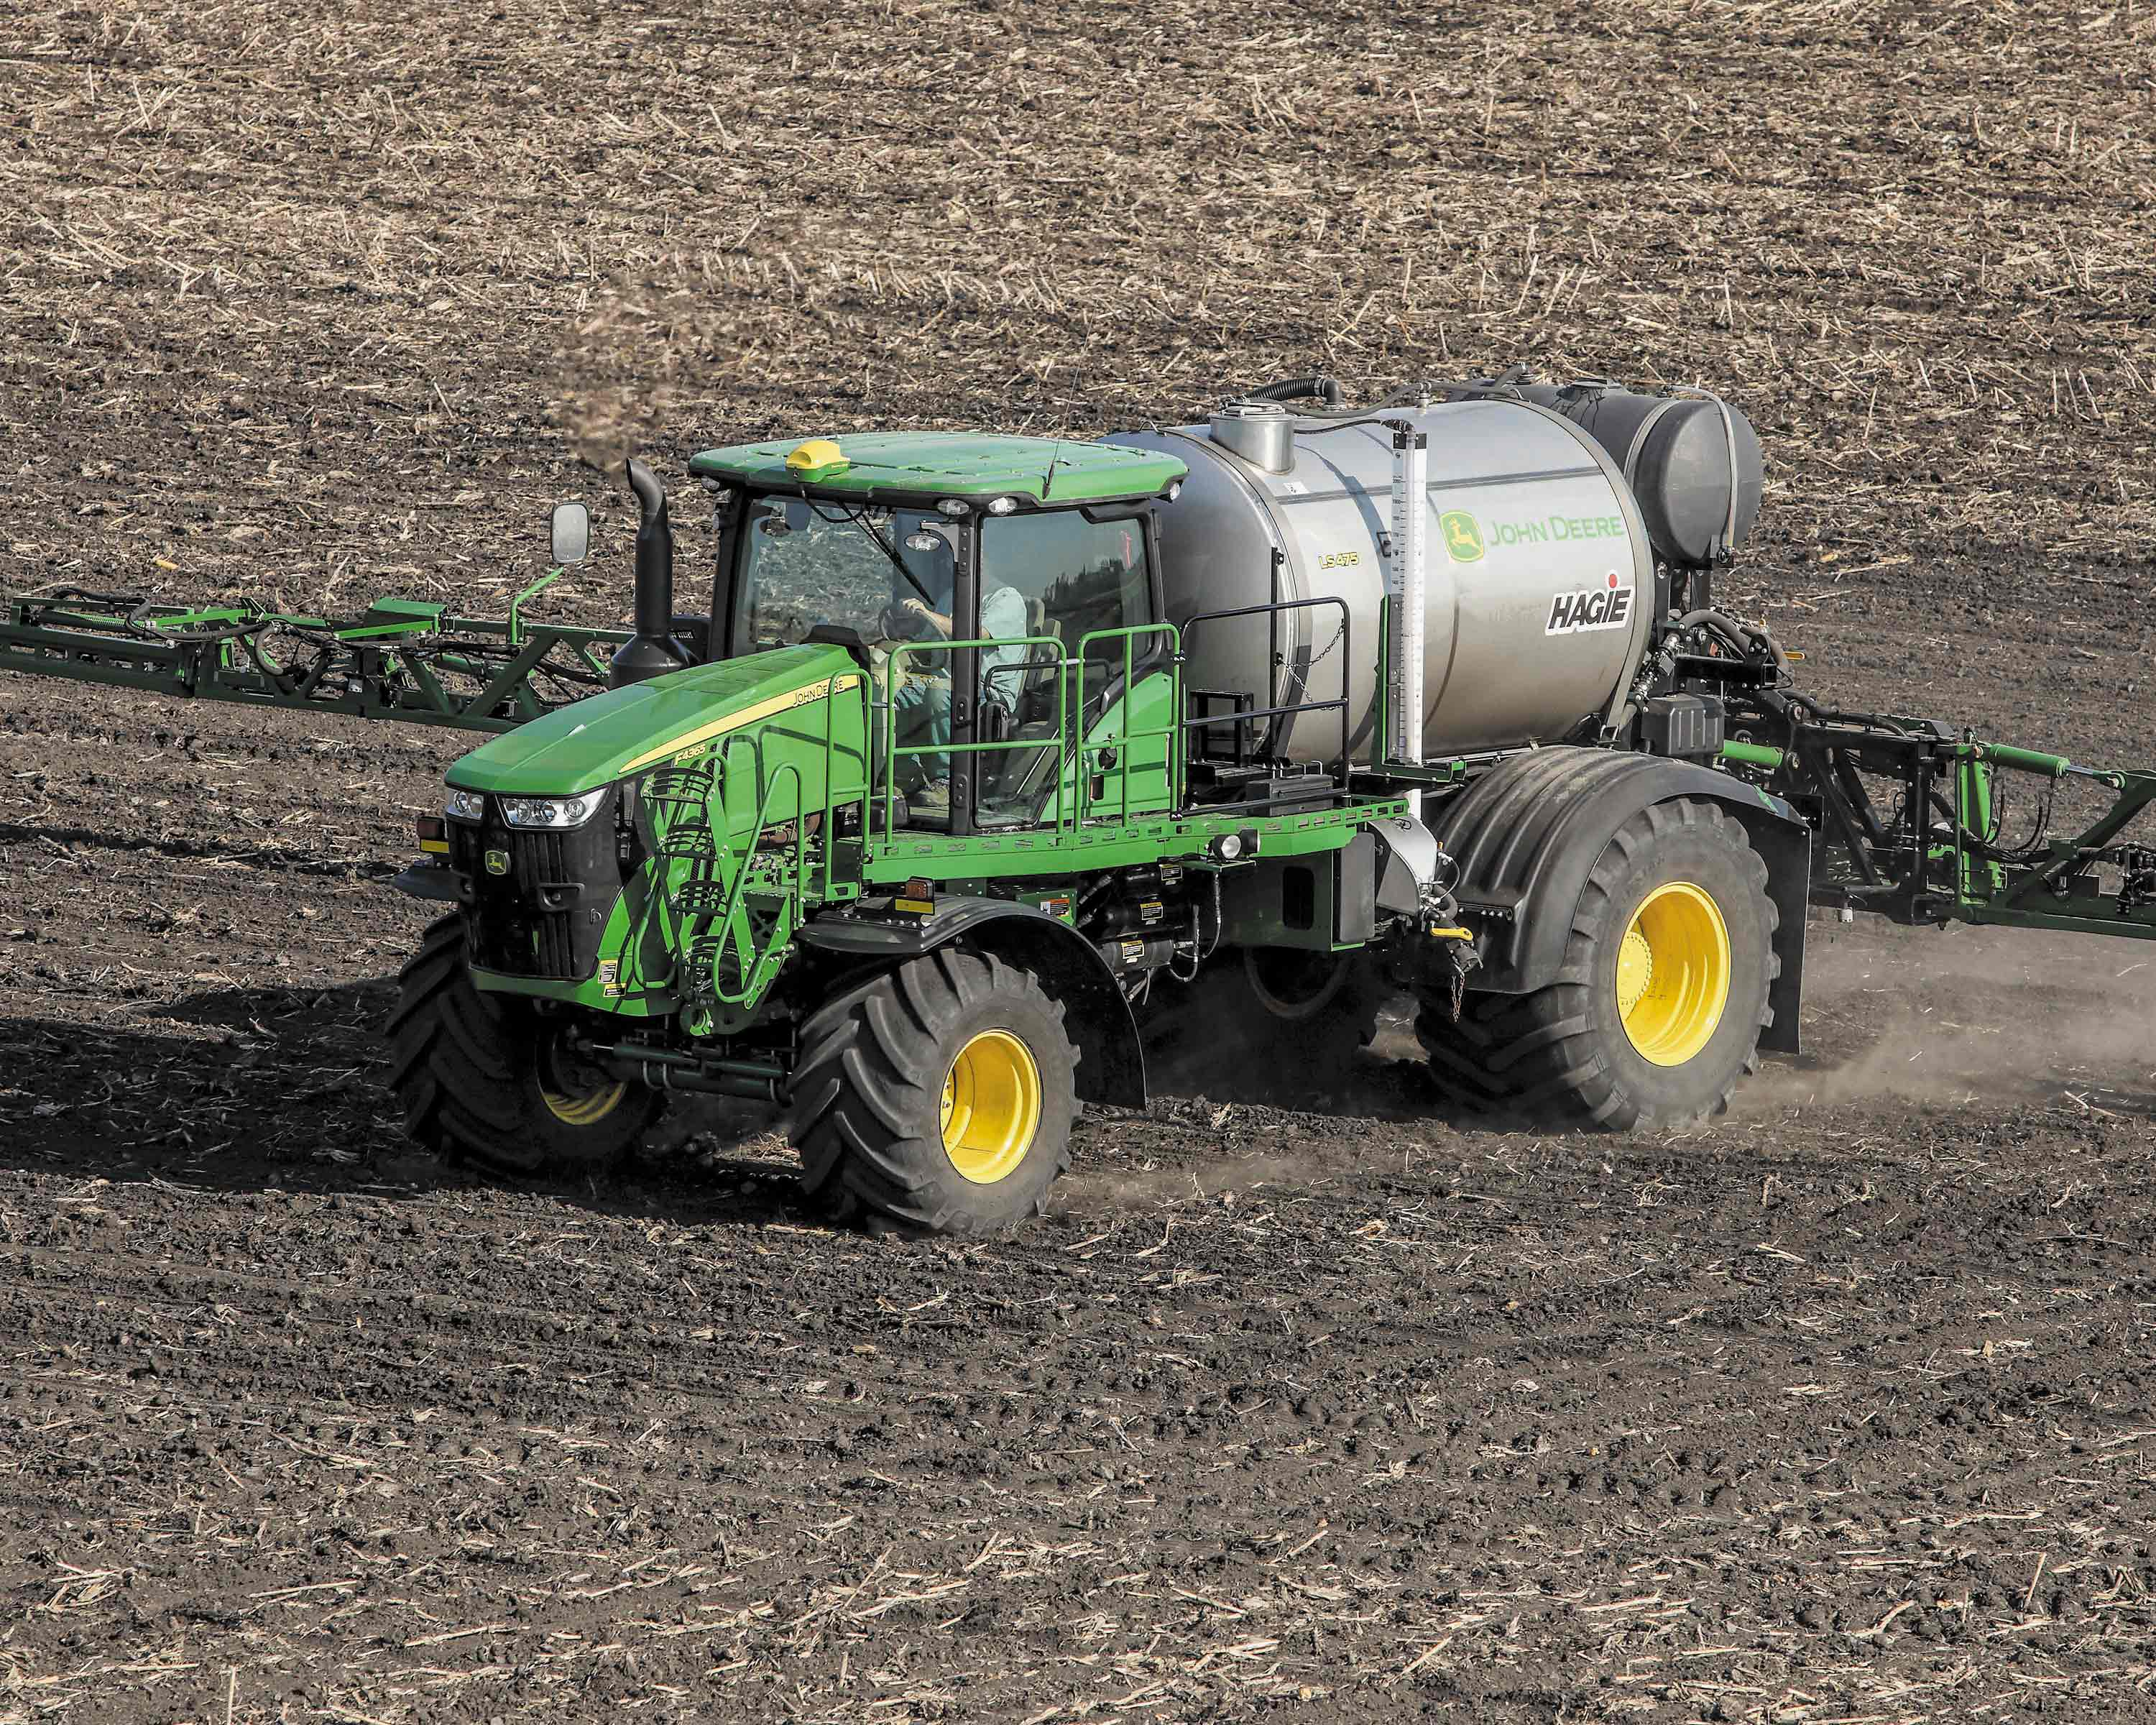 The LS475 Liquid System option for its F4365 High-Capacity Nutrient Applicator features a large 2,000-gallon tank.